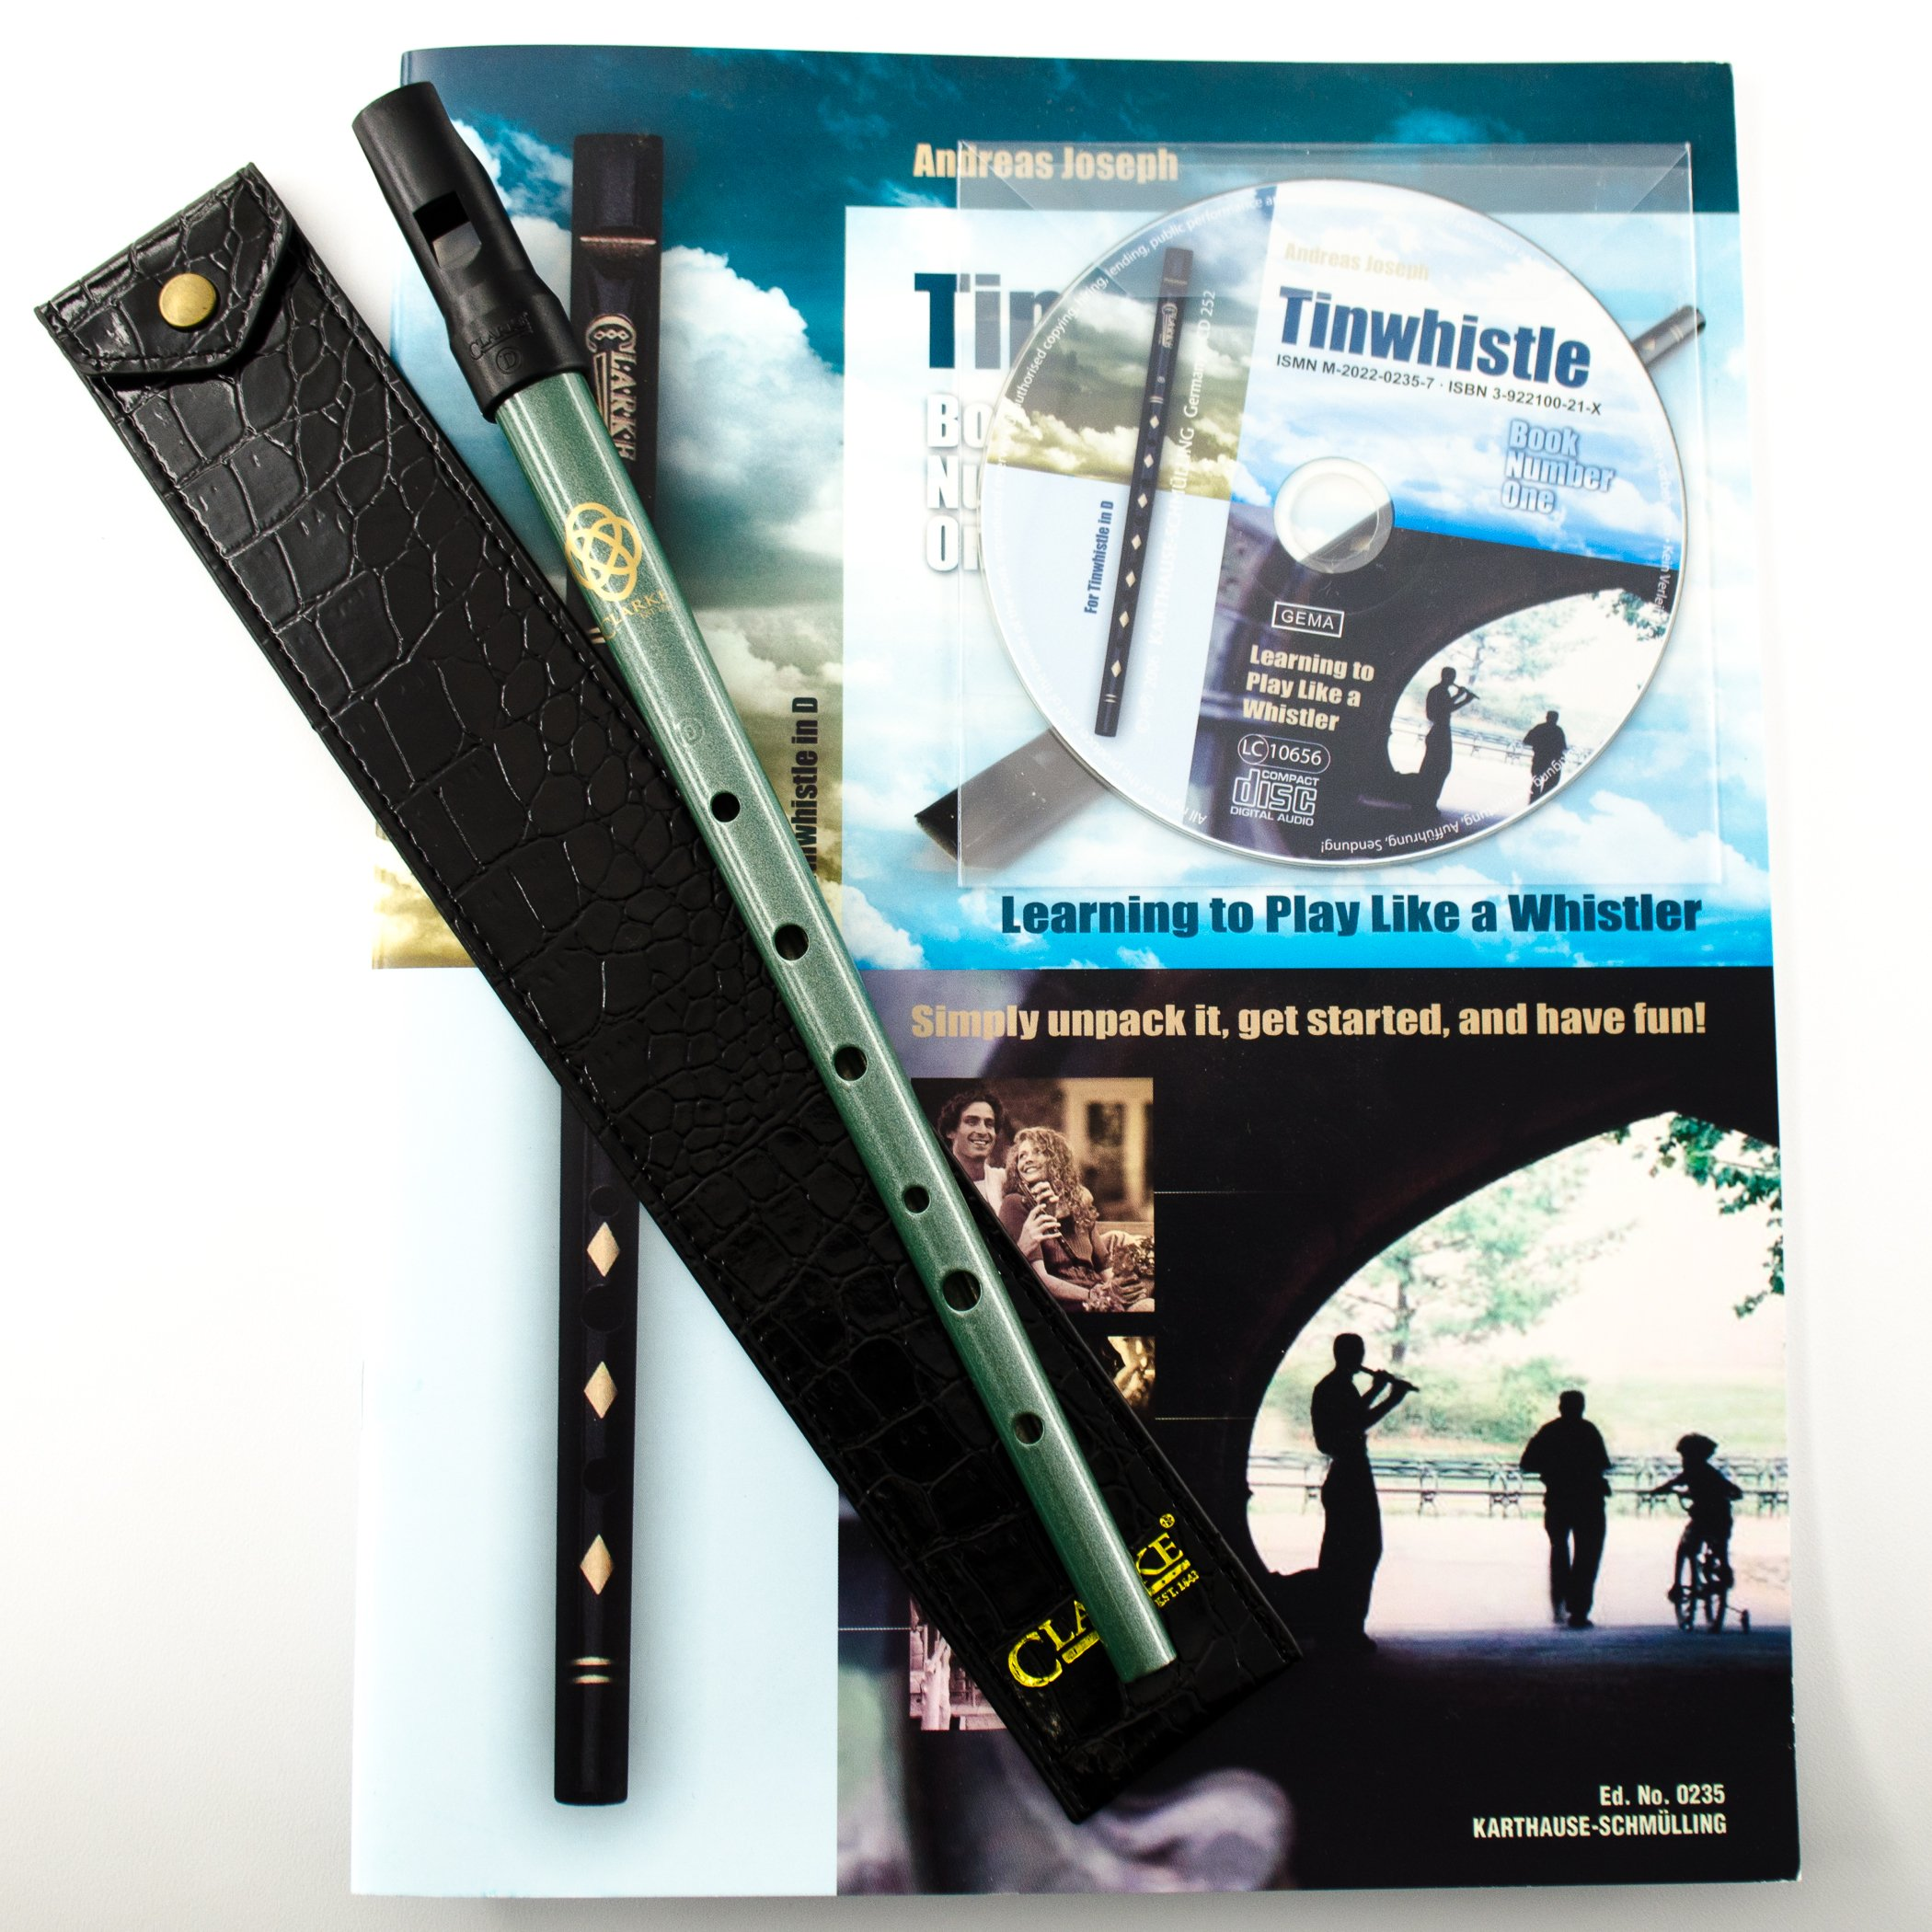 Clarke Celtic Tinwhistle Value Bundle with Tinwhistle, Pouch, Book and CD by Clarke (Image #1)